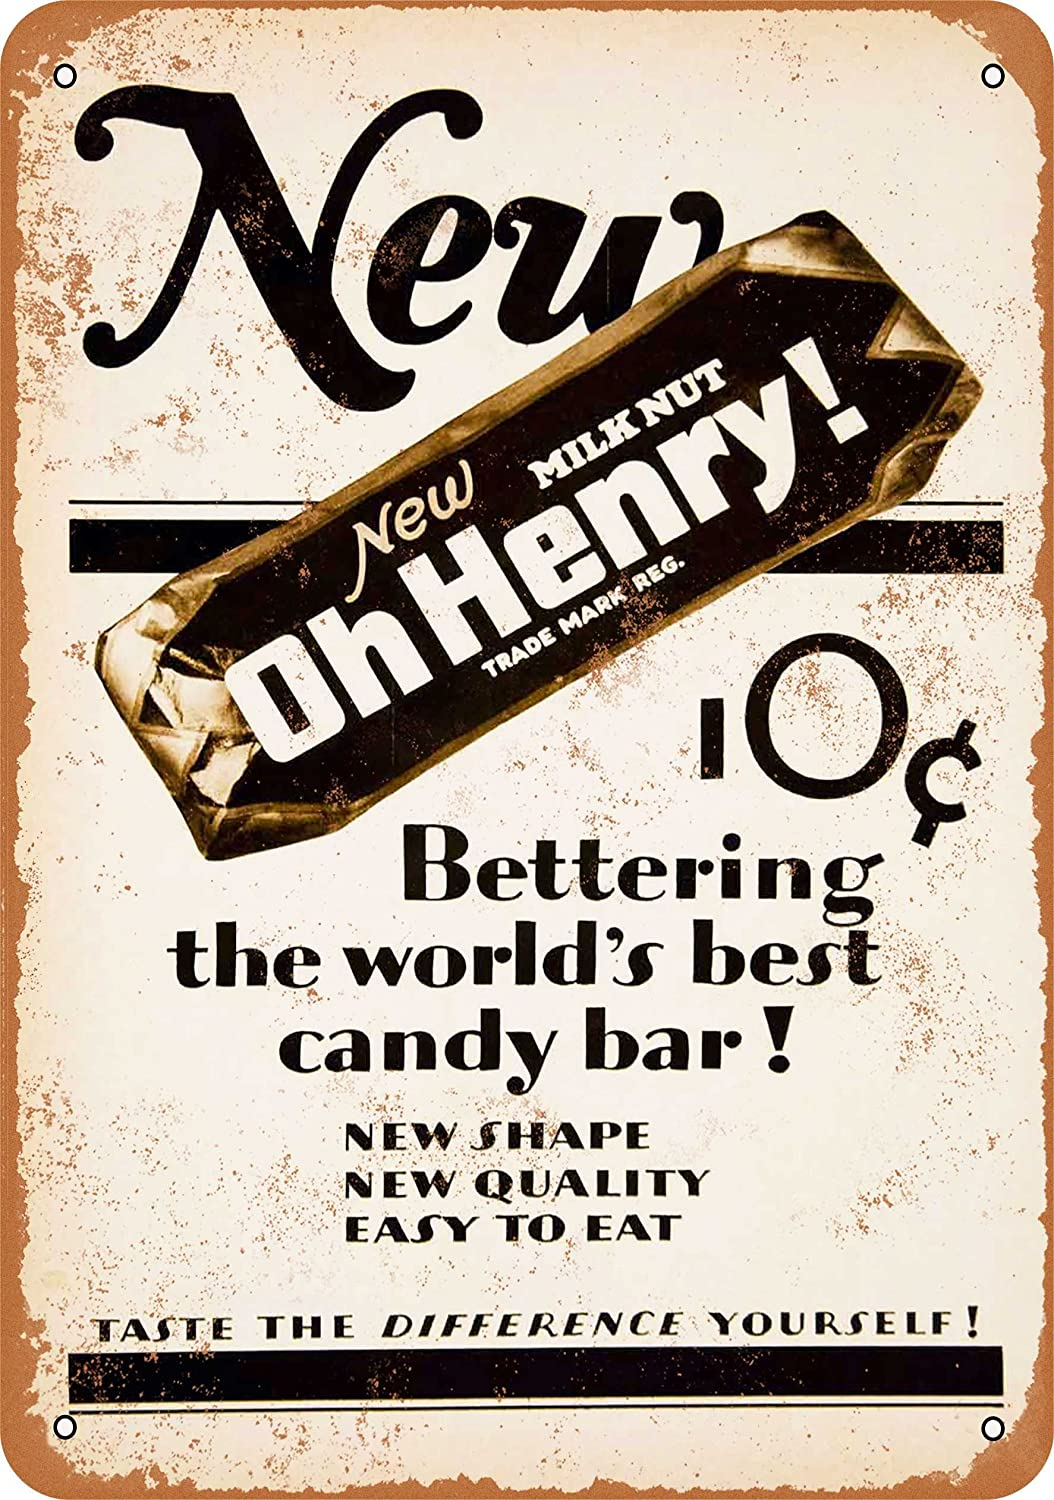 Wall-Color 7 x 10 Metal Sign - 1927 Oh Henry Candy Bar - Vintage Look